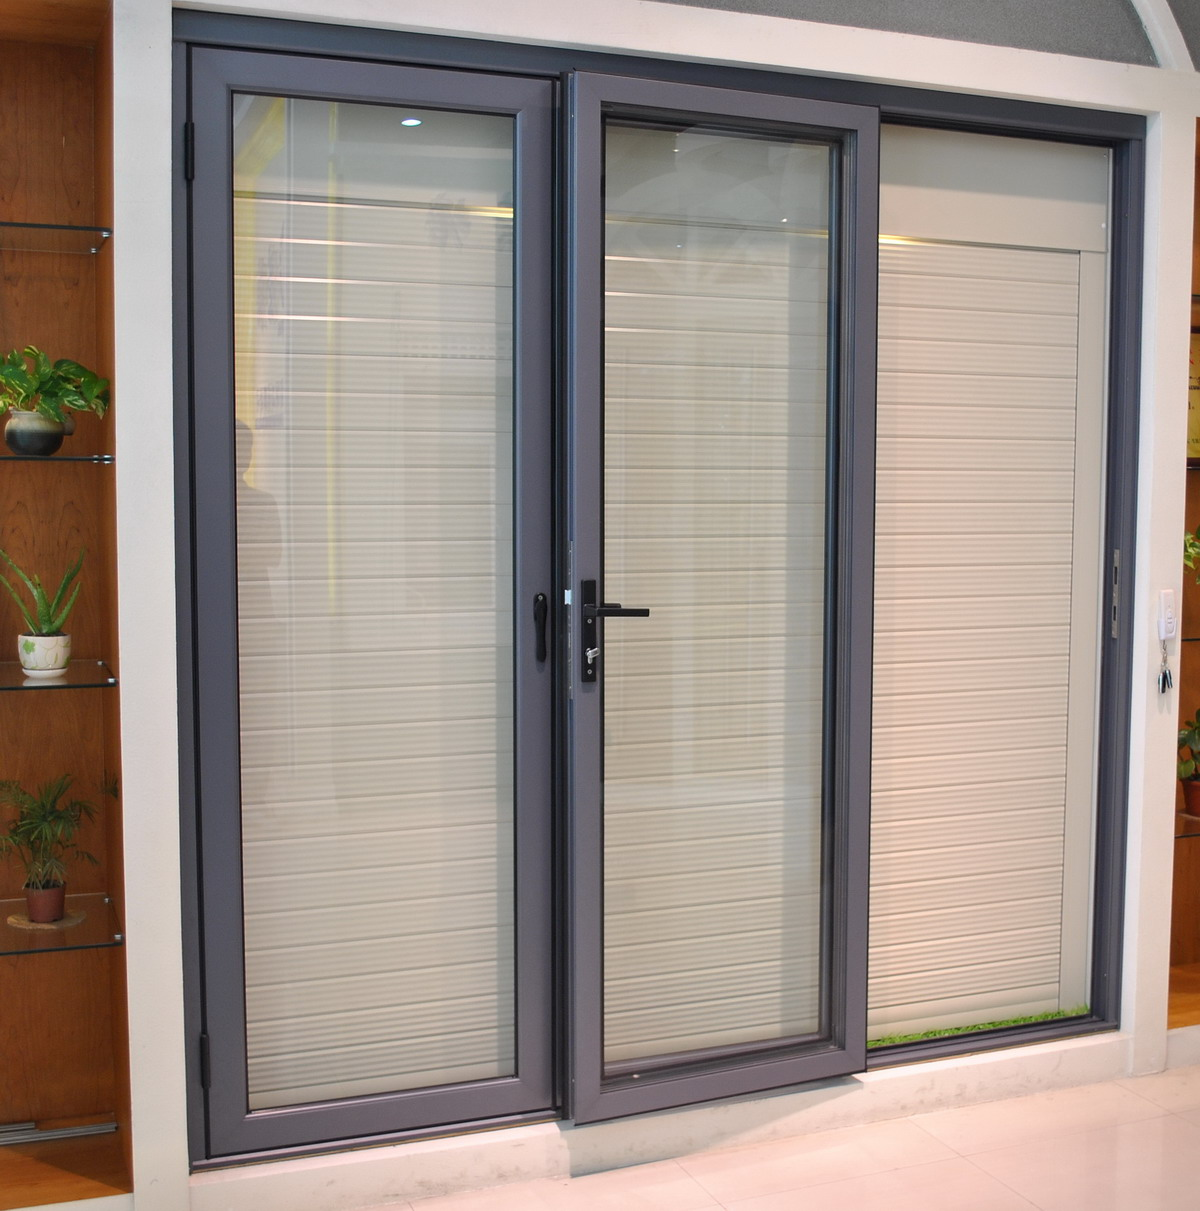 Buy Aluminium Windows and Doors Used Exterior Doors for Sale Price ...